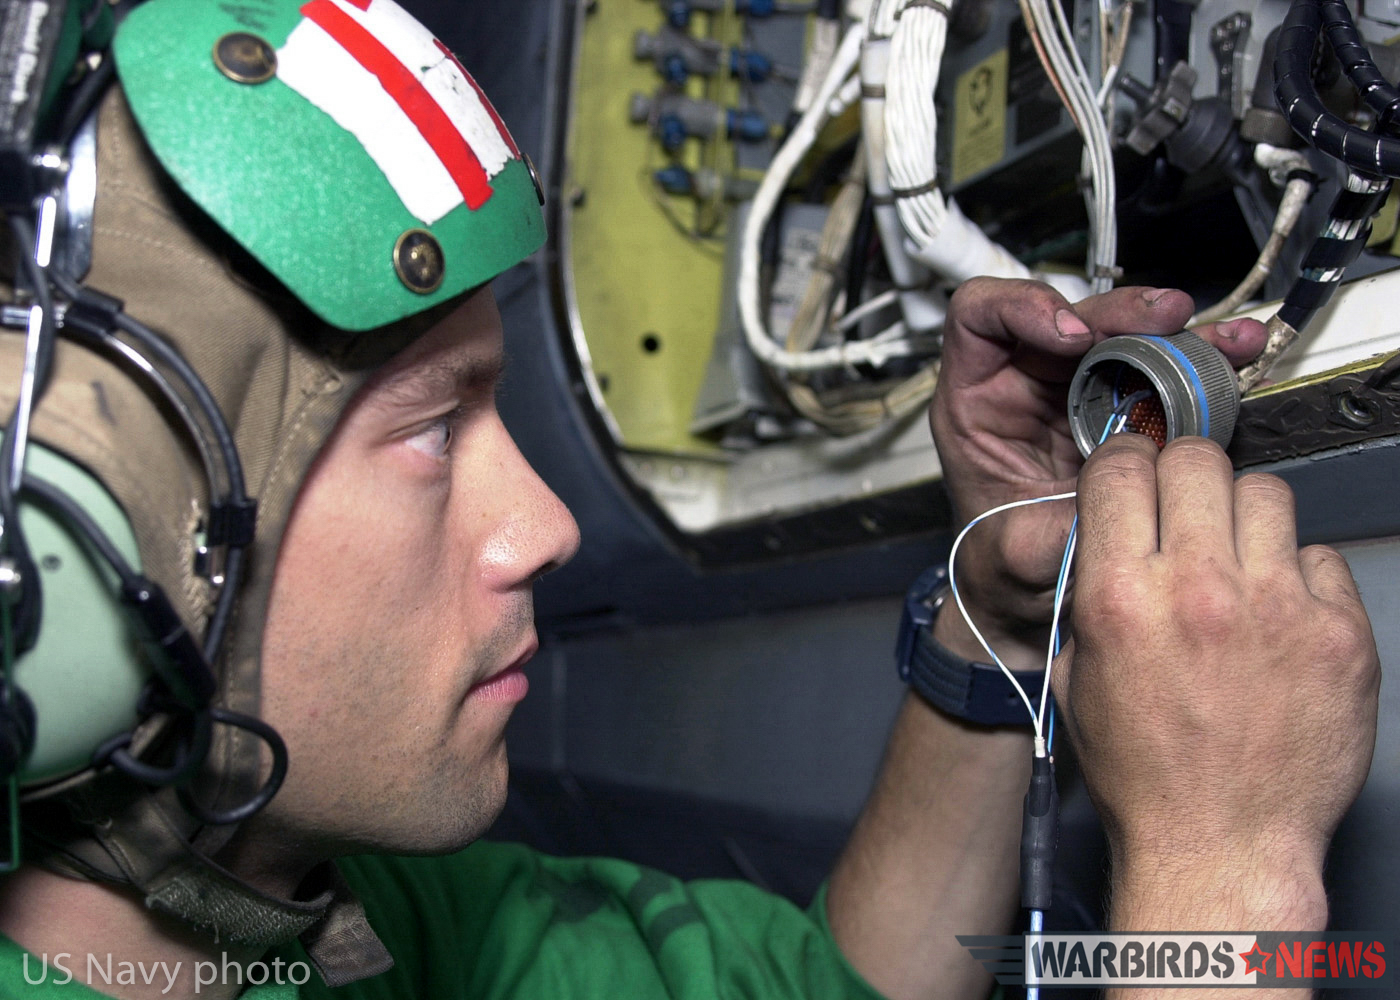 "At sea aboard USS Abraham Lincoln (Oct. 18, 2002) -- Aviation Electronic's Technician 2nd Class Tony Komljenovich from Cleveland, Ohio, assigned to Fighter Squadron Thirty-One (VF-31) troubleshoots the wires on a cannon plug of an F-14D ""Tomcat."" This maintenance is performed to ensure that the APG-71 radar system aboard the aircraft is working properly. The APG-71 radar is a digital processing system that gives the F-14D improved detection and tracking range. It features a low-sidelobe antenna, a sidelobe-blanking guard channel, and monopulse angle tracking, all of which are intended to make the radar less vulnerable to jamming. Lincoln and her embarked Carrier Air Wing Fourteen (CVW-14) are on a scheduled six month deployment conducting combat missions in support of Operation Enduring Freedom. U.S. Navy photo by Photographer's Mate 2nd Class Virginia K. Schaefer. (RELEASED)"